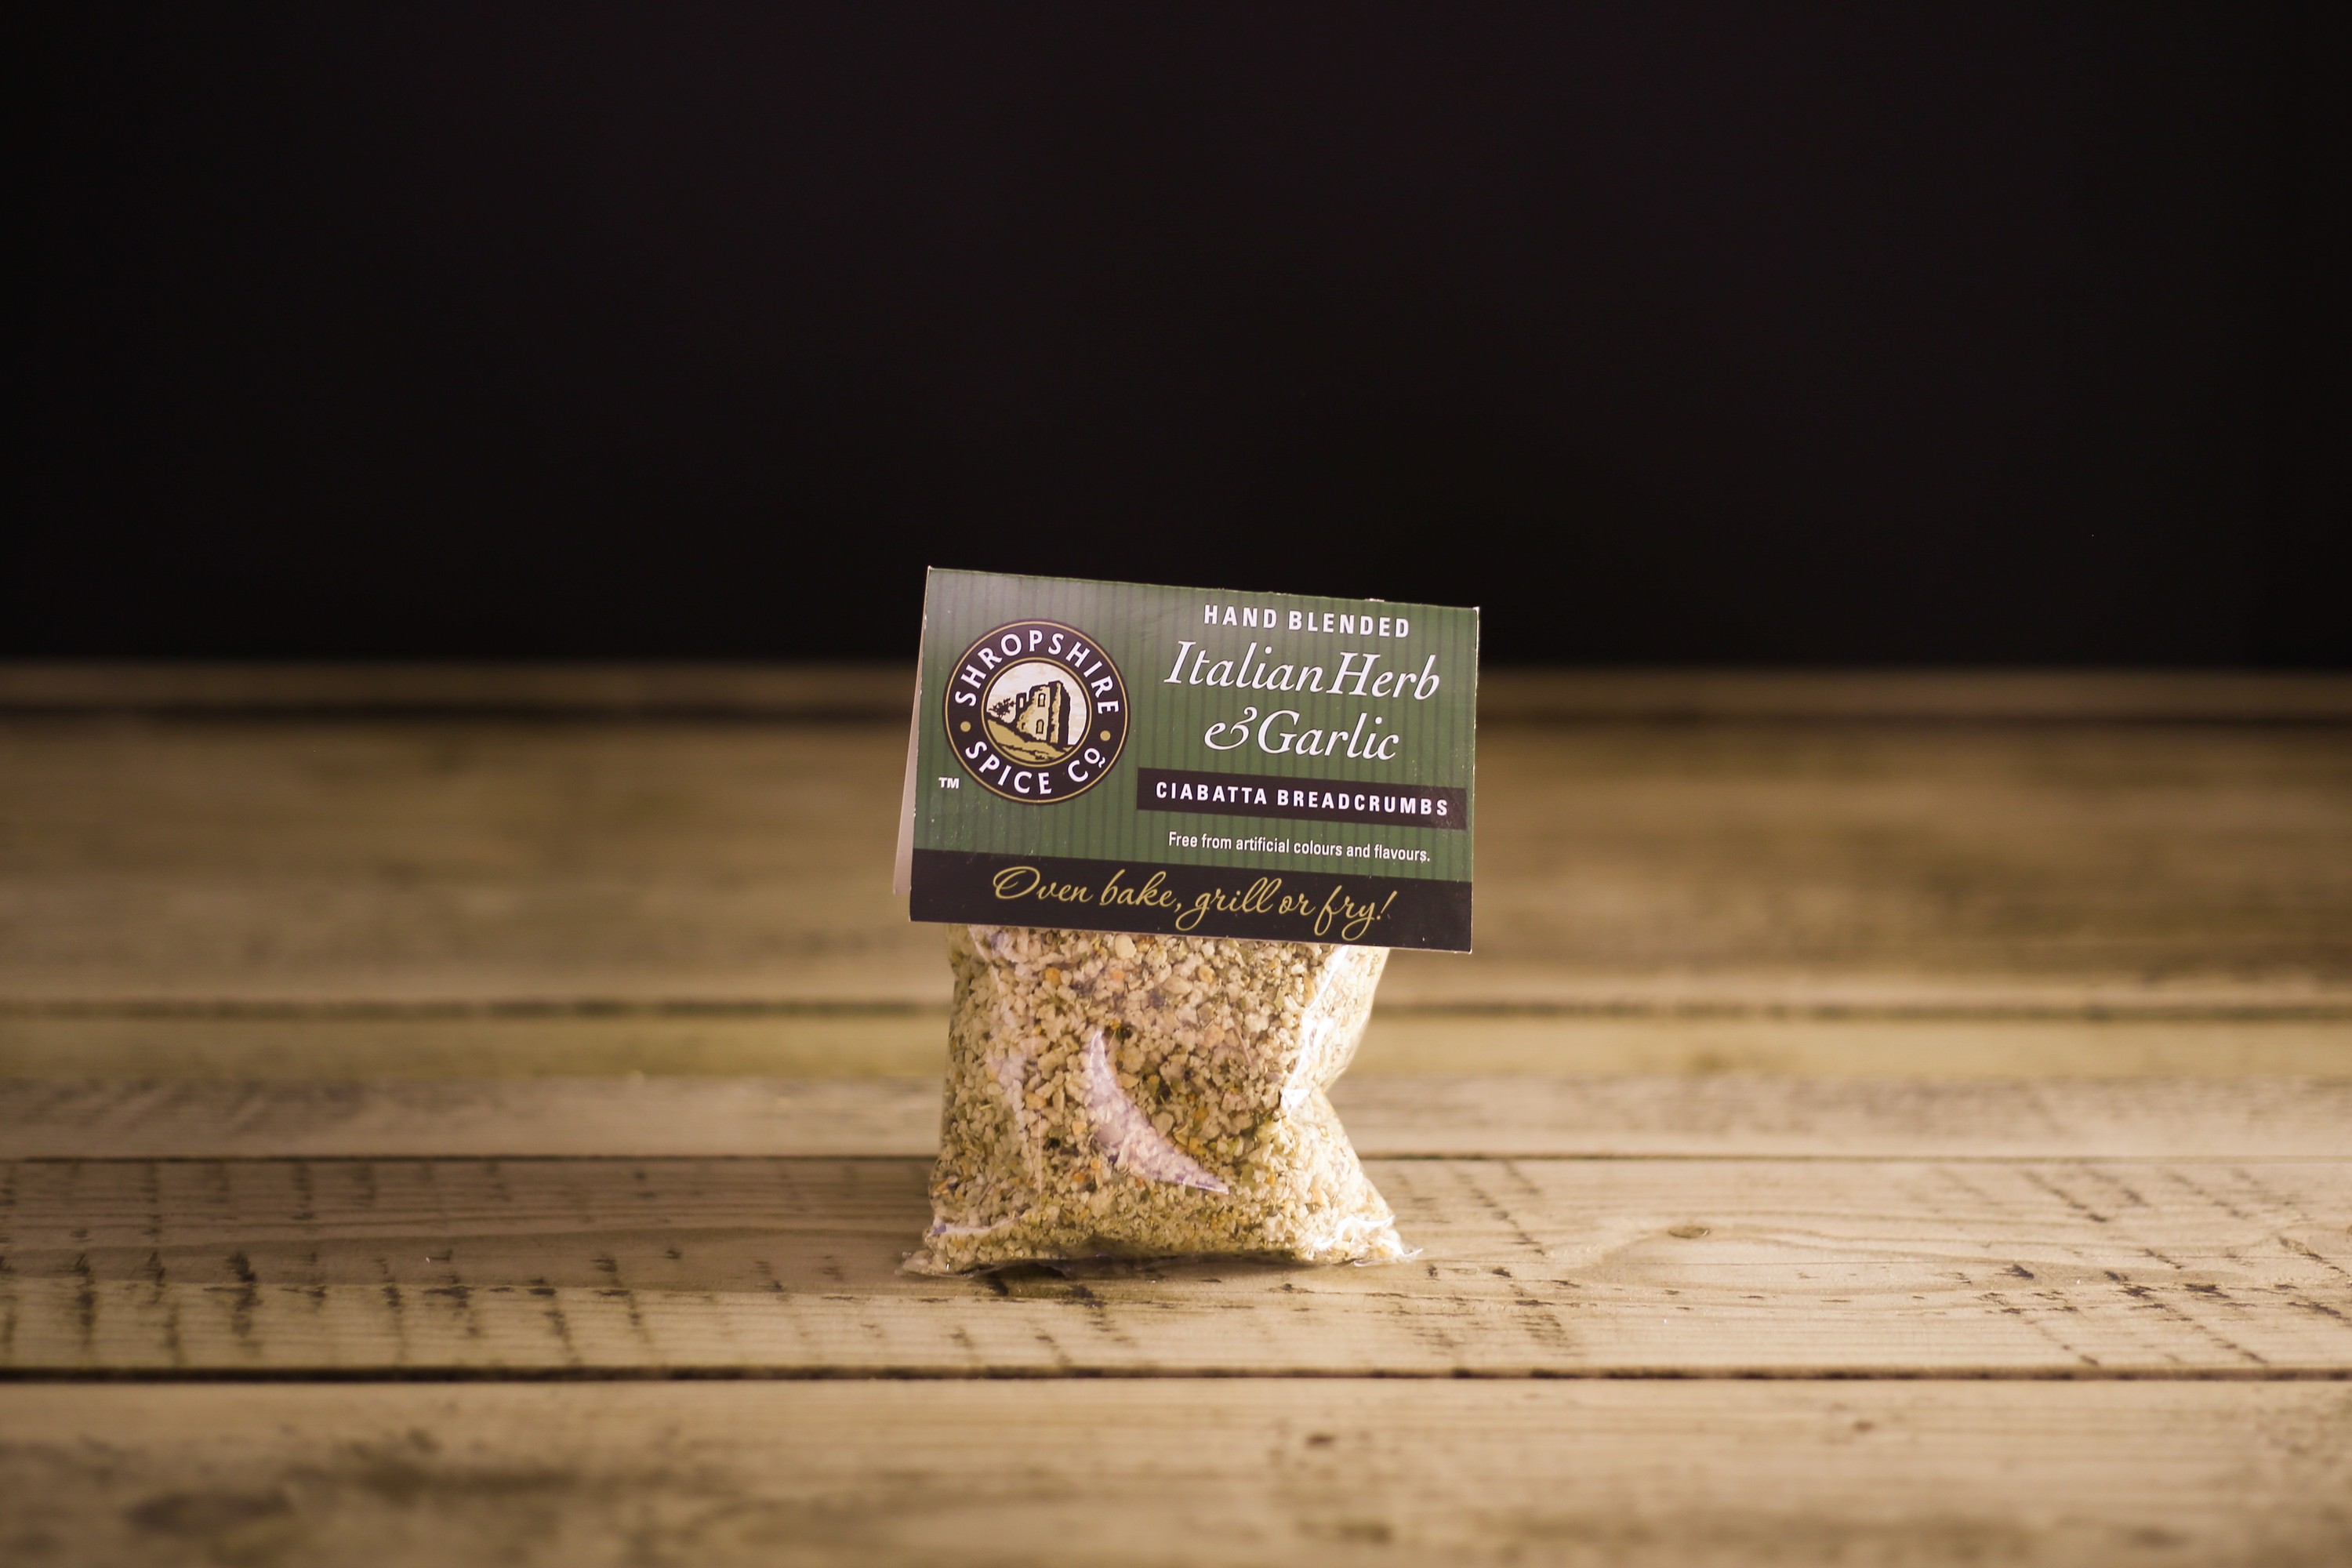 Shropshire Spice Co Italian Herb and Garlic Ciabatta Breadcrumbs